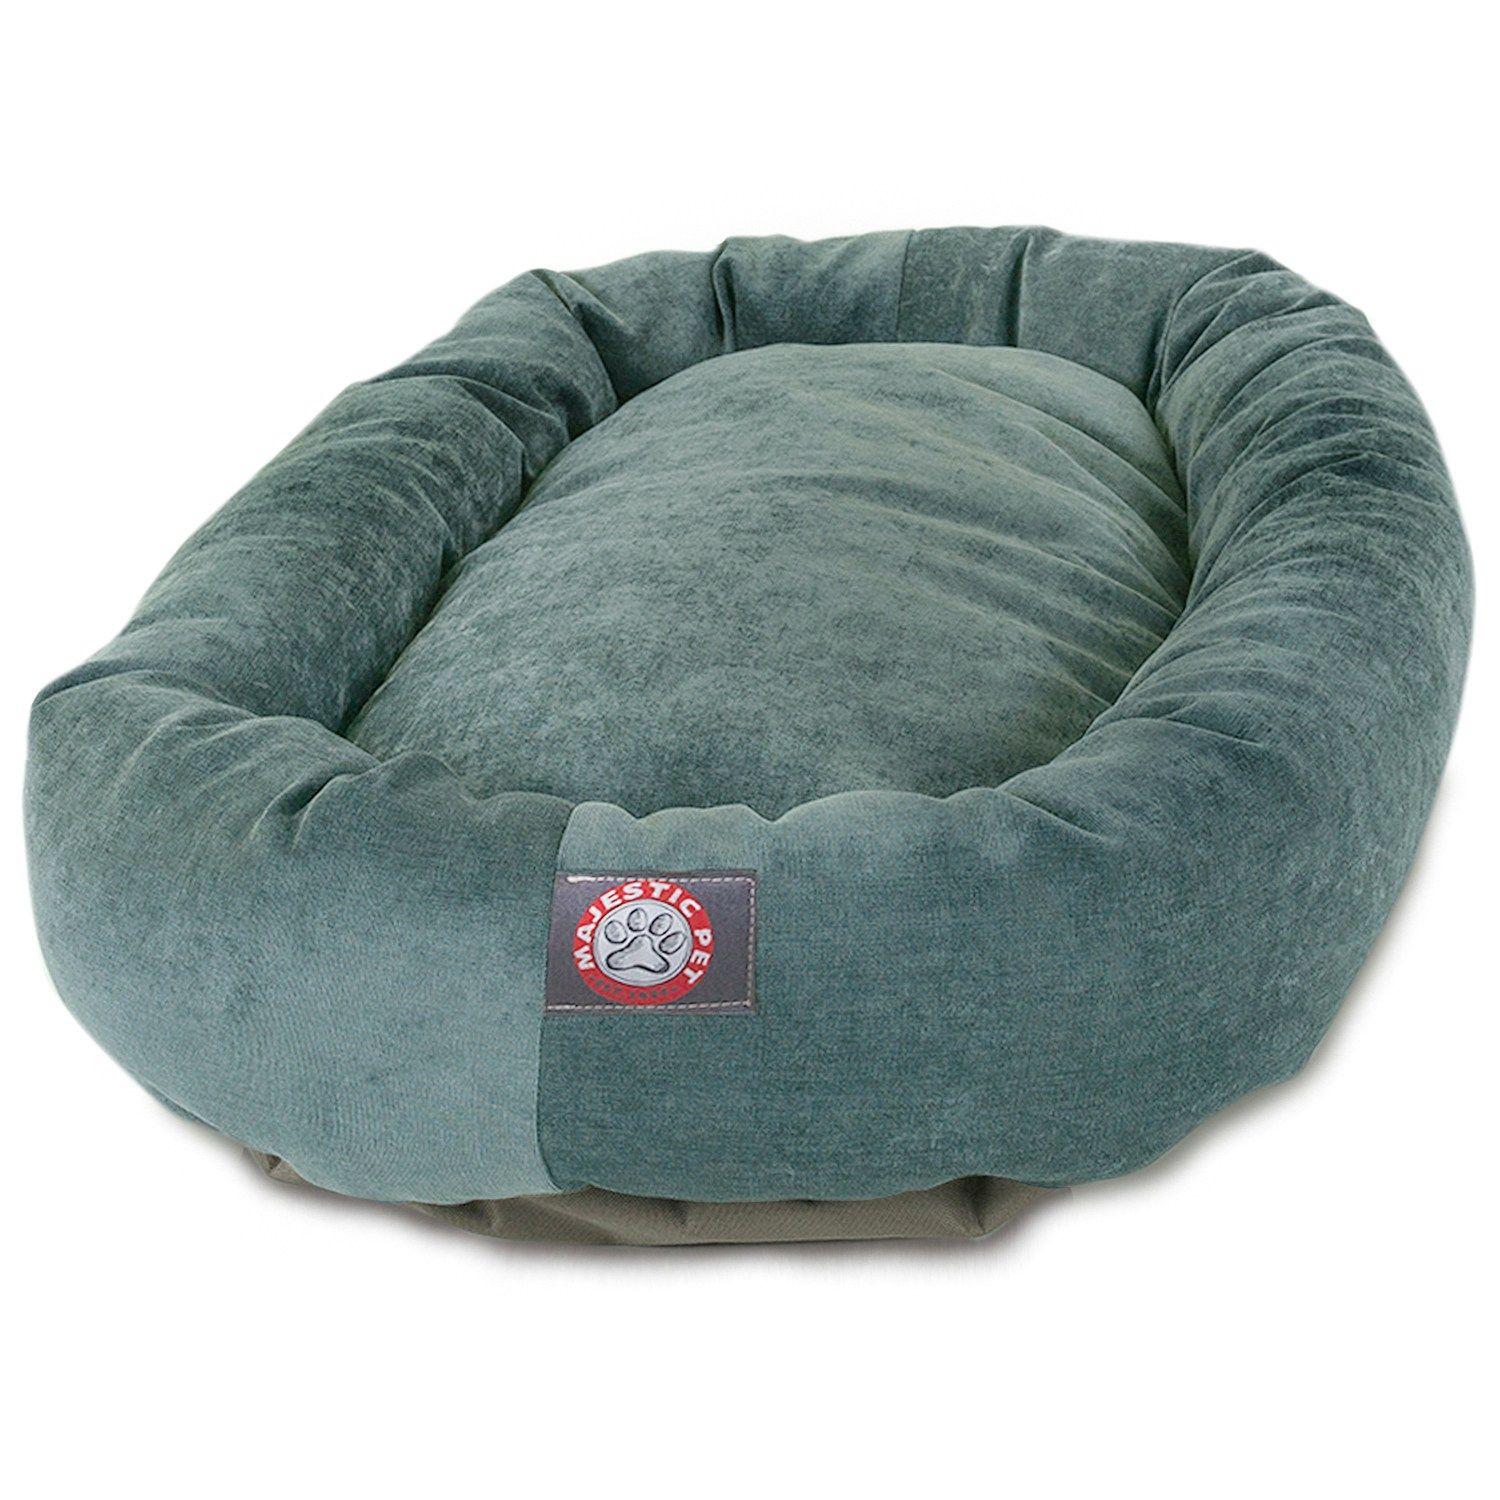 Majestic Pet Villa Bagel Pet Bed 32'' x 23'' Villa,